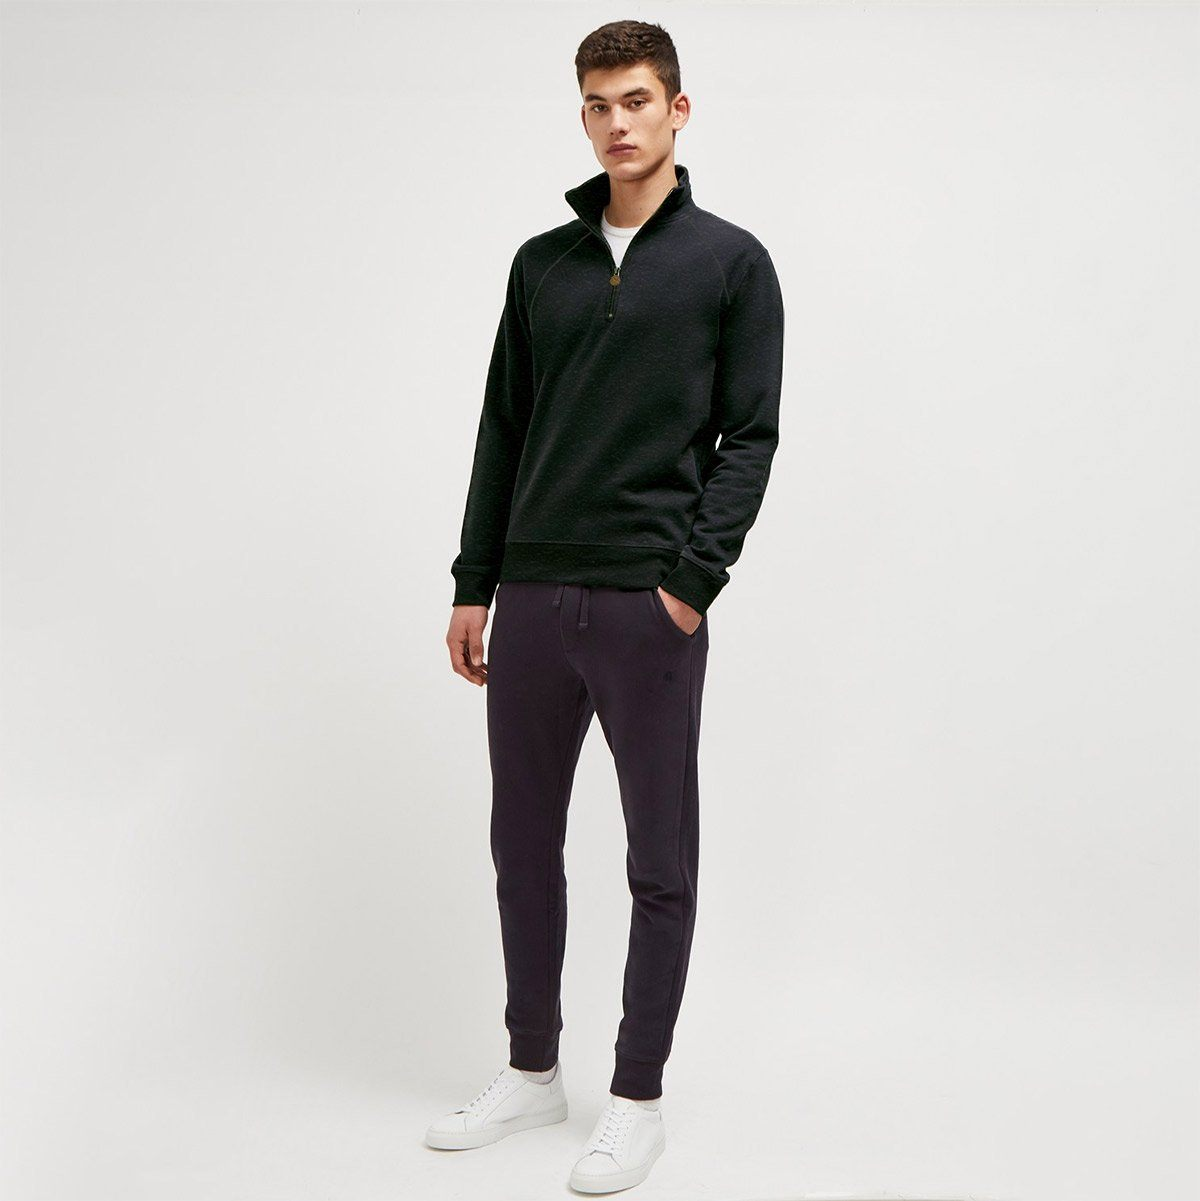 FR Men's Cut Label Quarter Zipper Neck Sweat Shirt